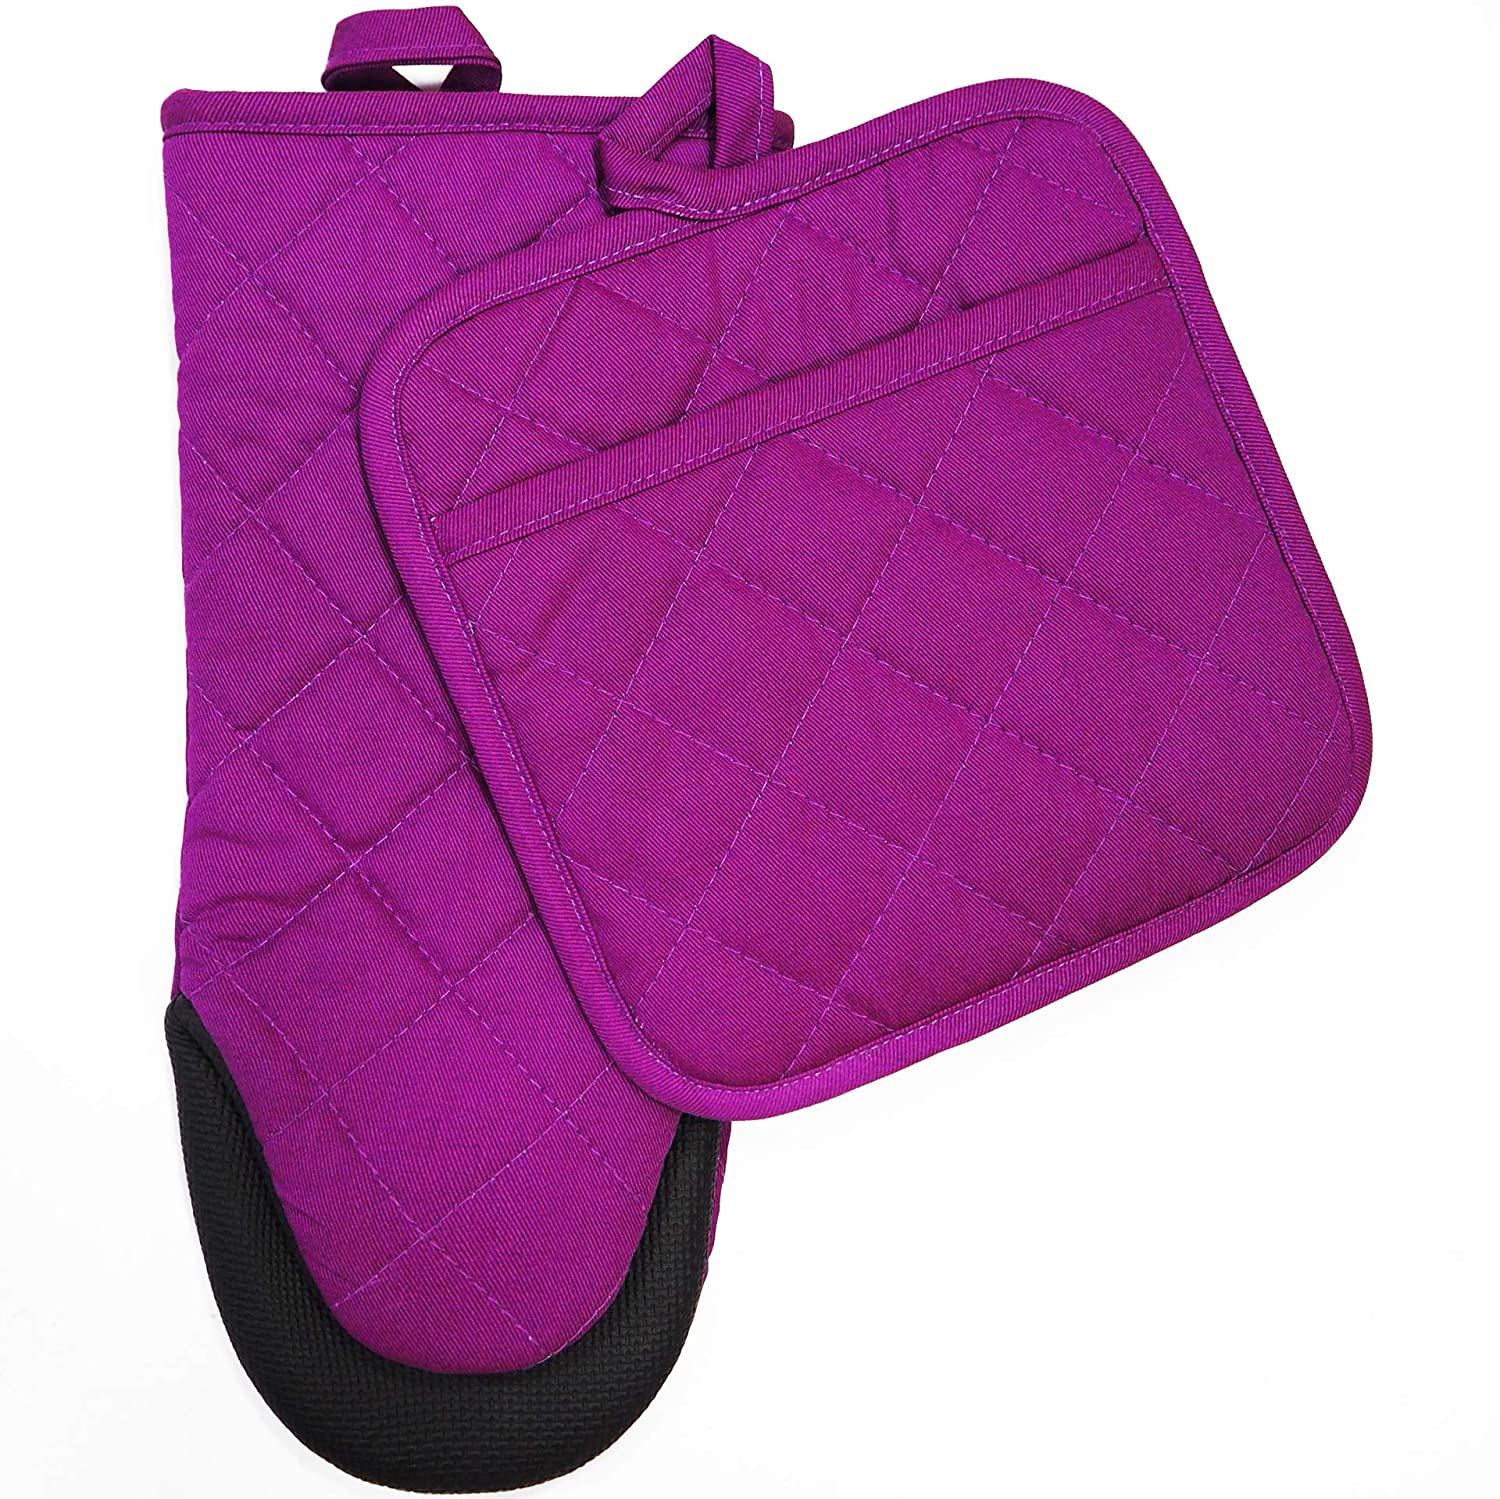 RED LMLDETA Cotton Oven Mitt Pot Holder Kitchen Set with Neoprene Non-Slip Grip, Heat Resistant, 2pcs Set (Neoprene Rubber, Purple)